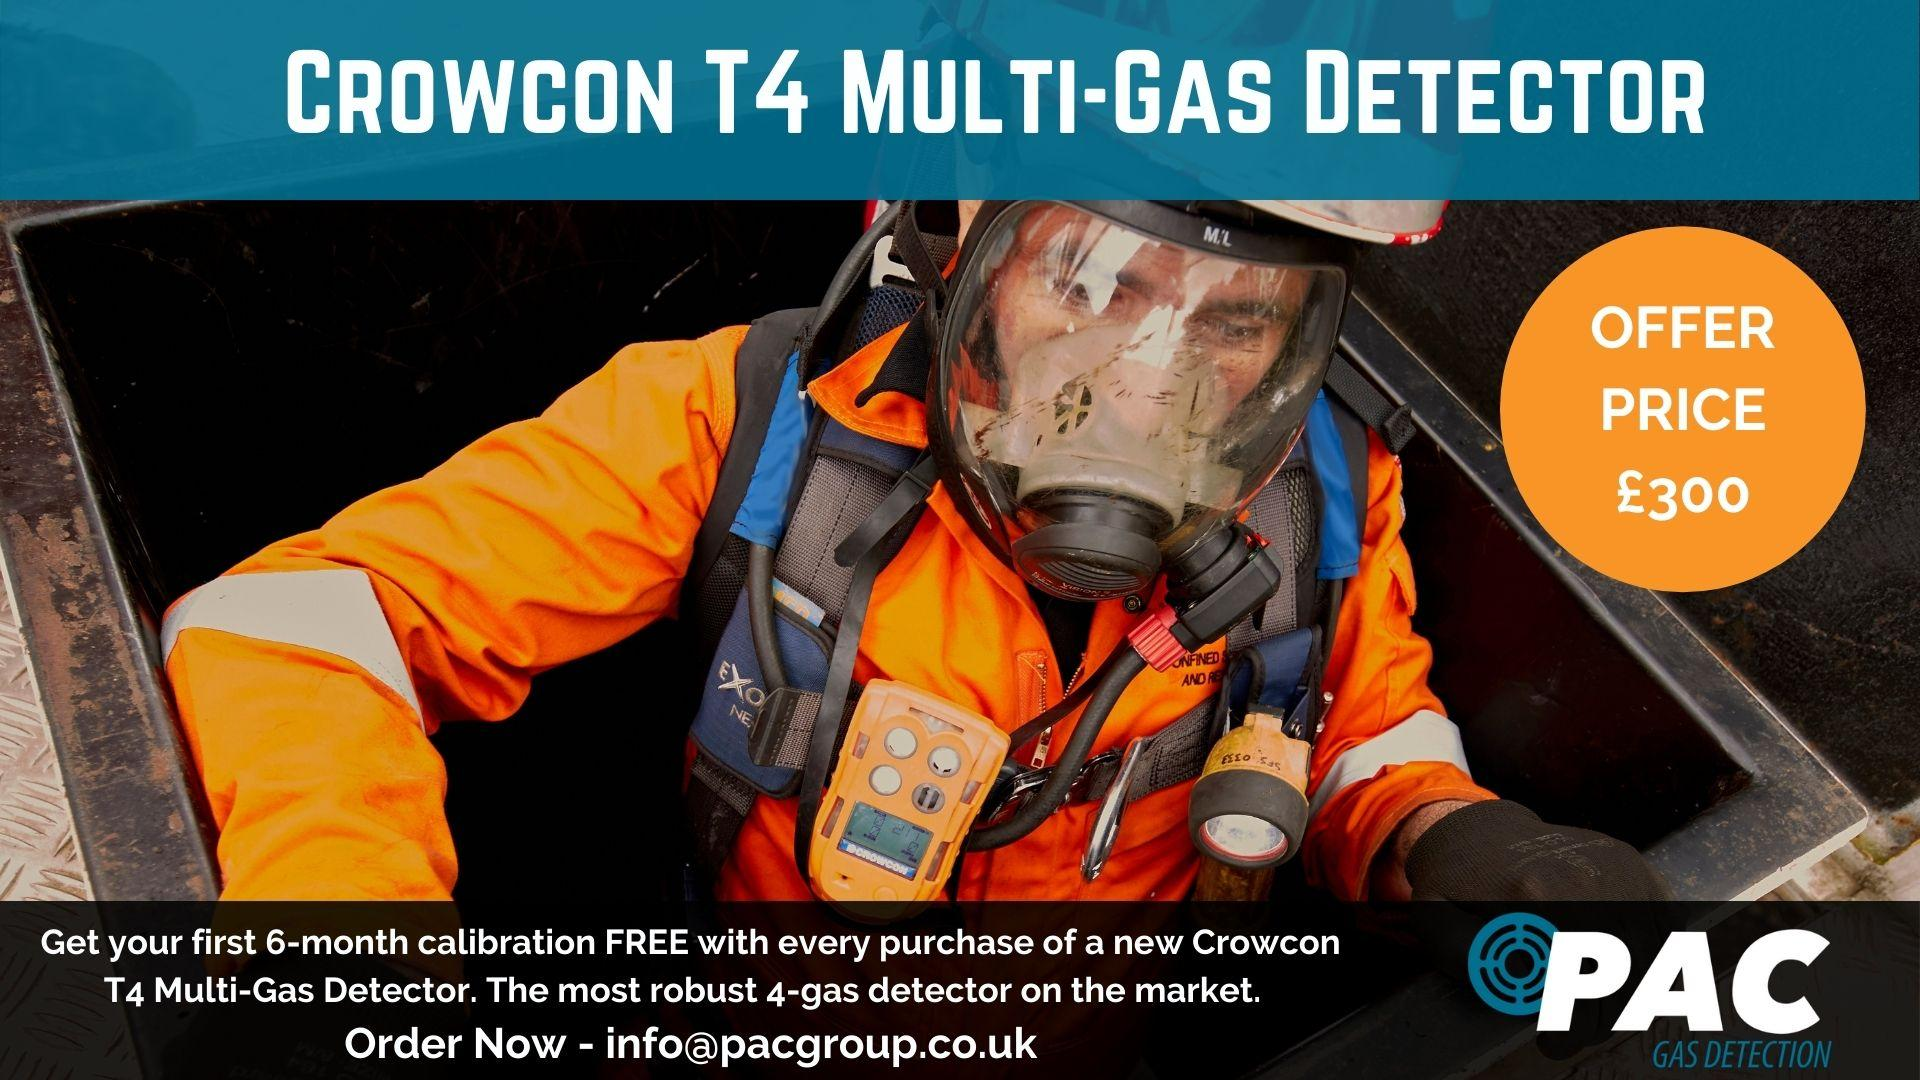 PAC Gas Detection Crowcon T4 Offer